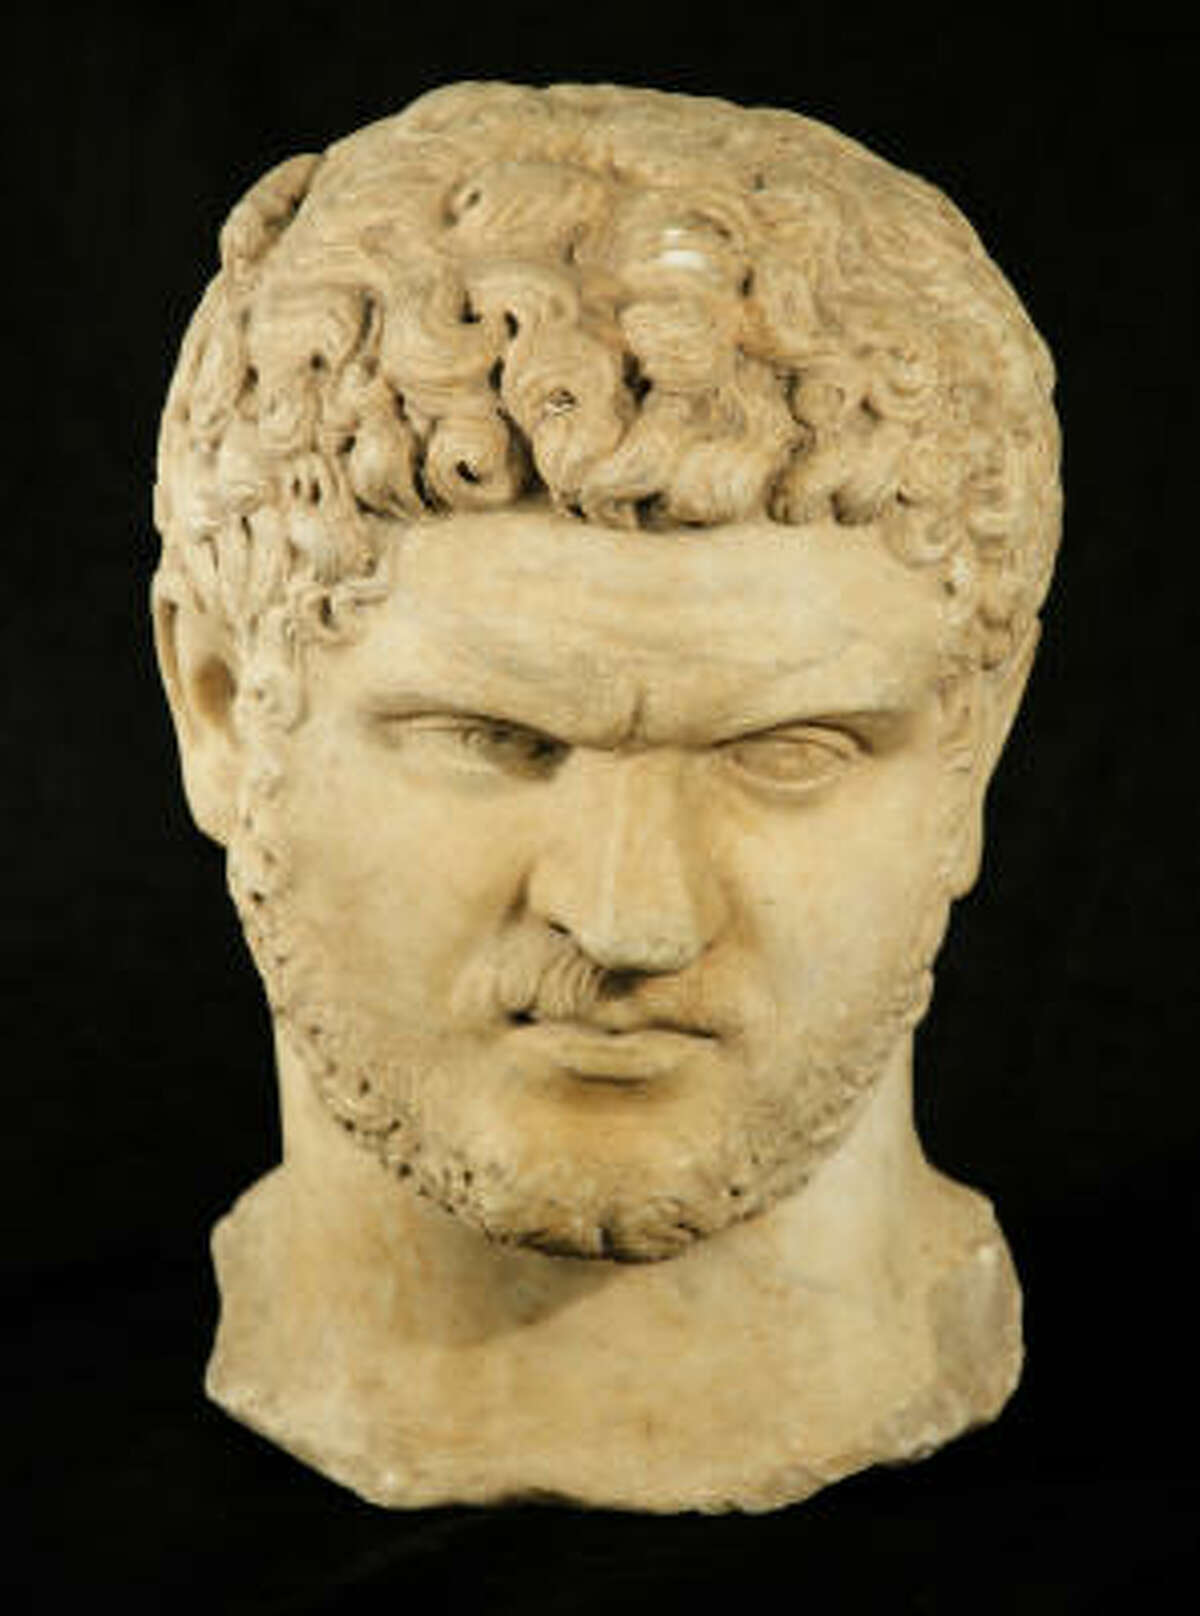 Roy Hofheinz bought the bust of Roman Emperor Caracalla about 50 years ago.